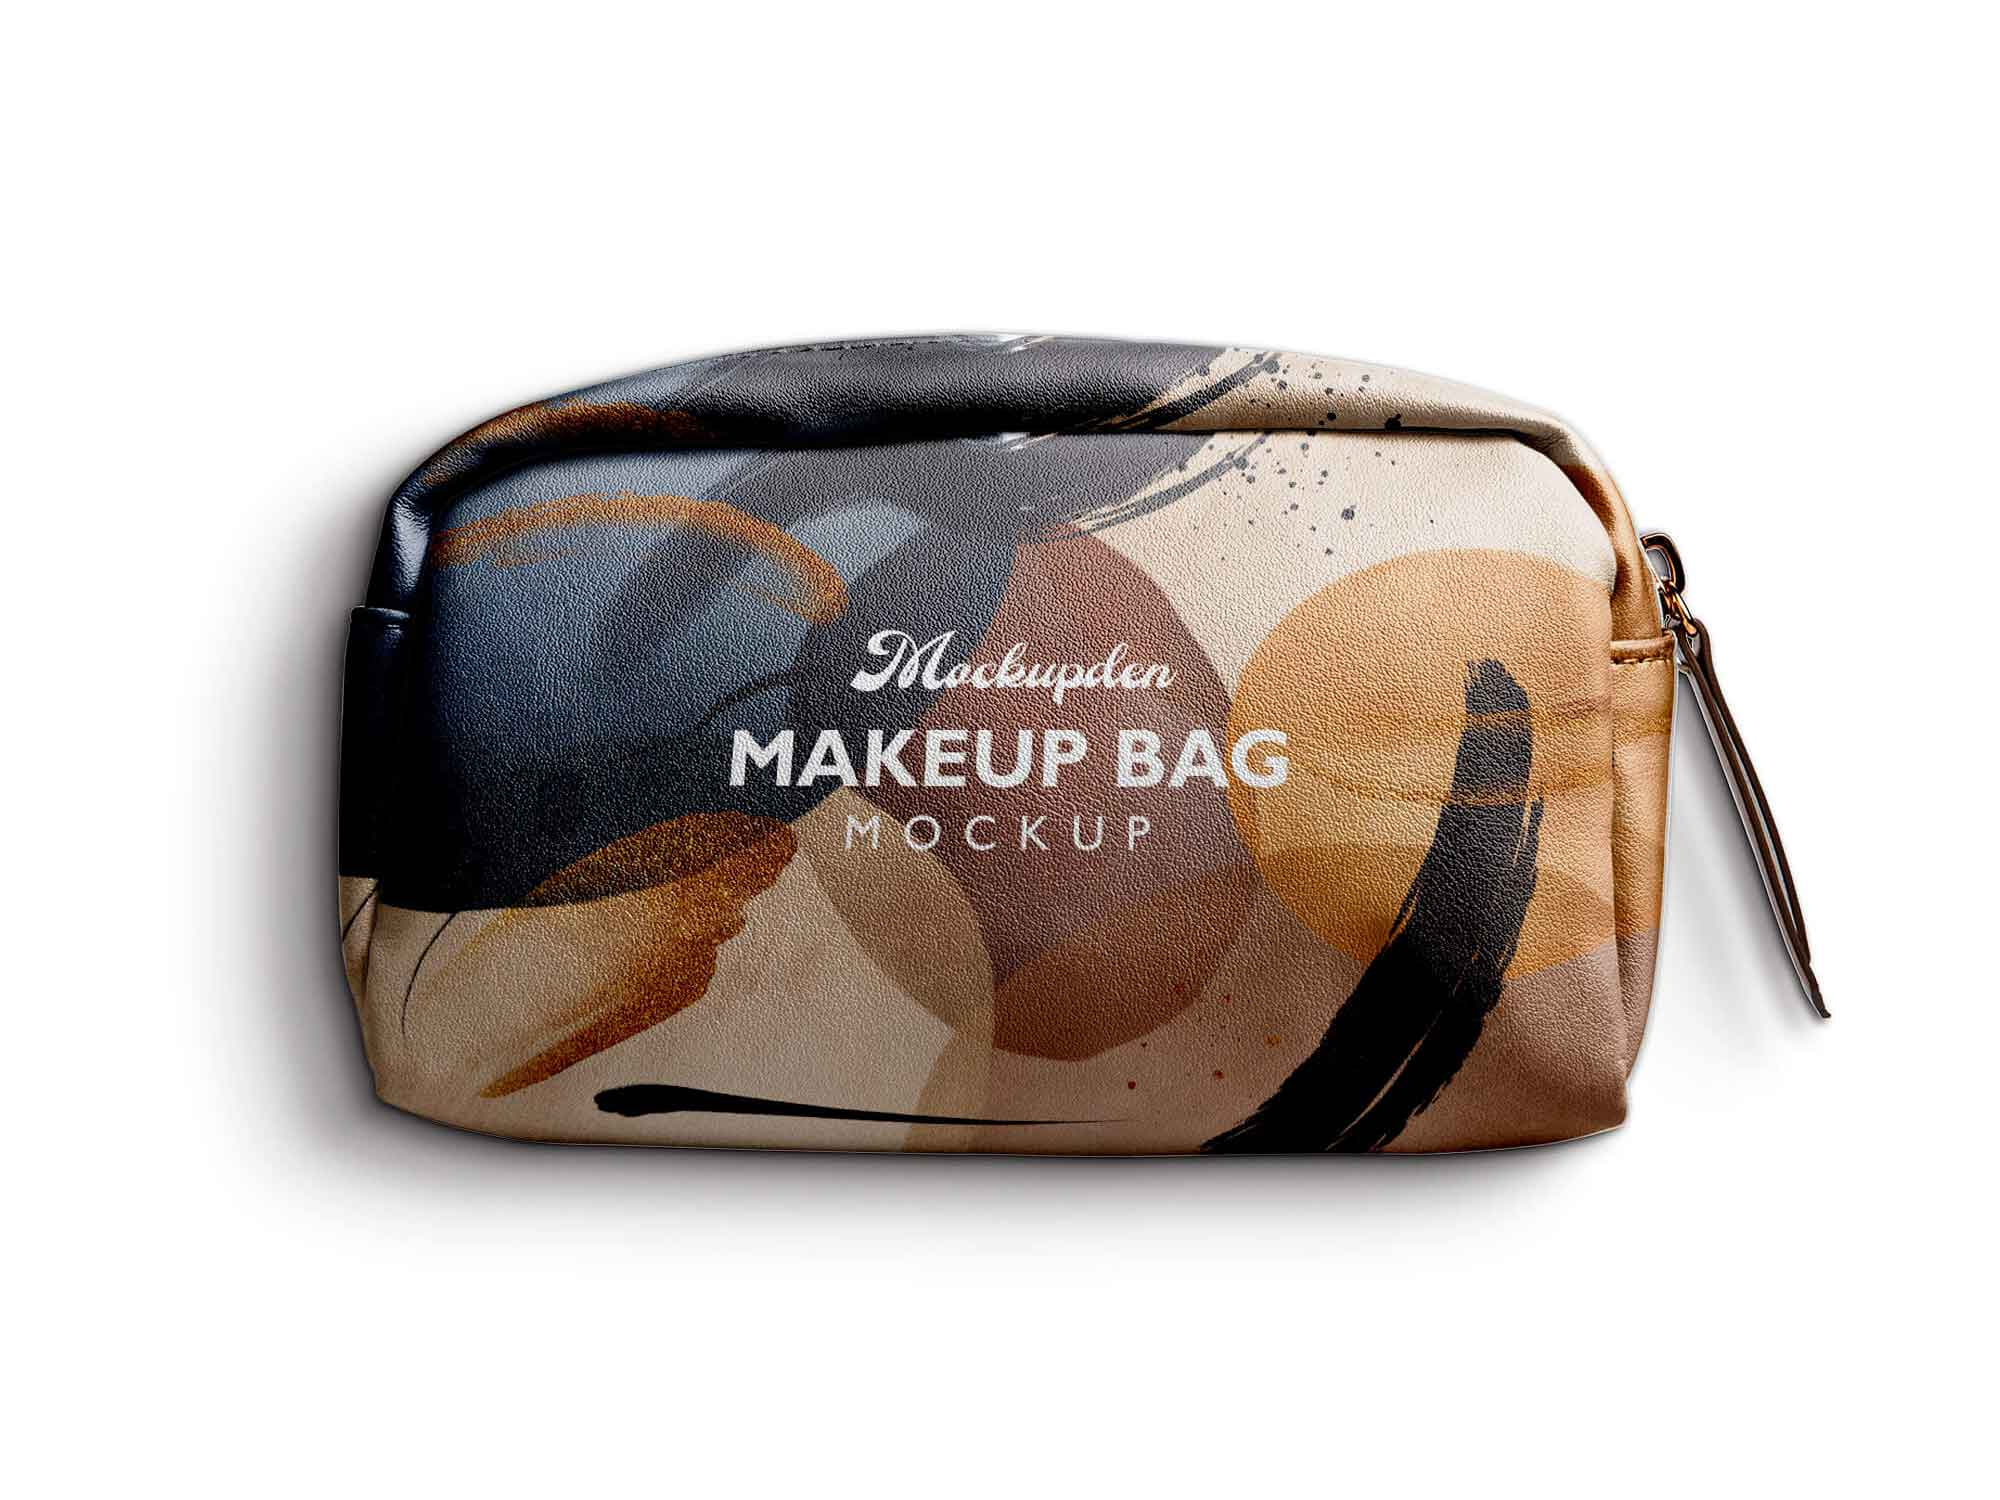 Makeup bags occupy a very specific niche and can't be replaced by anything else. Free Makeup Bag Mockup Psd